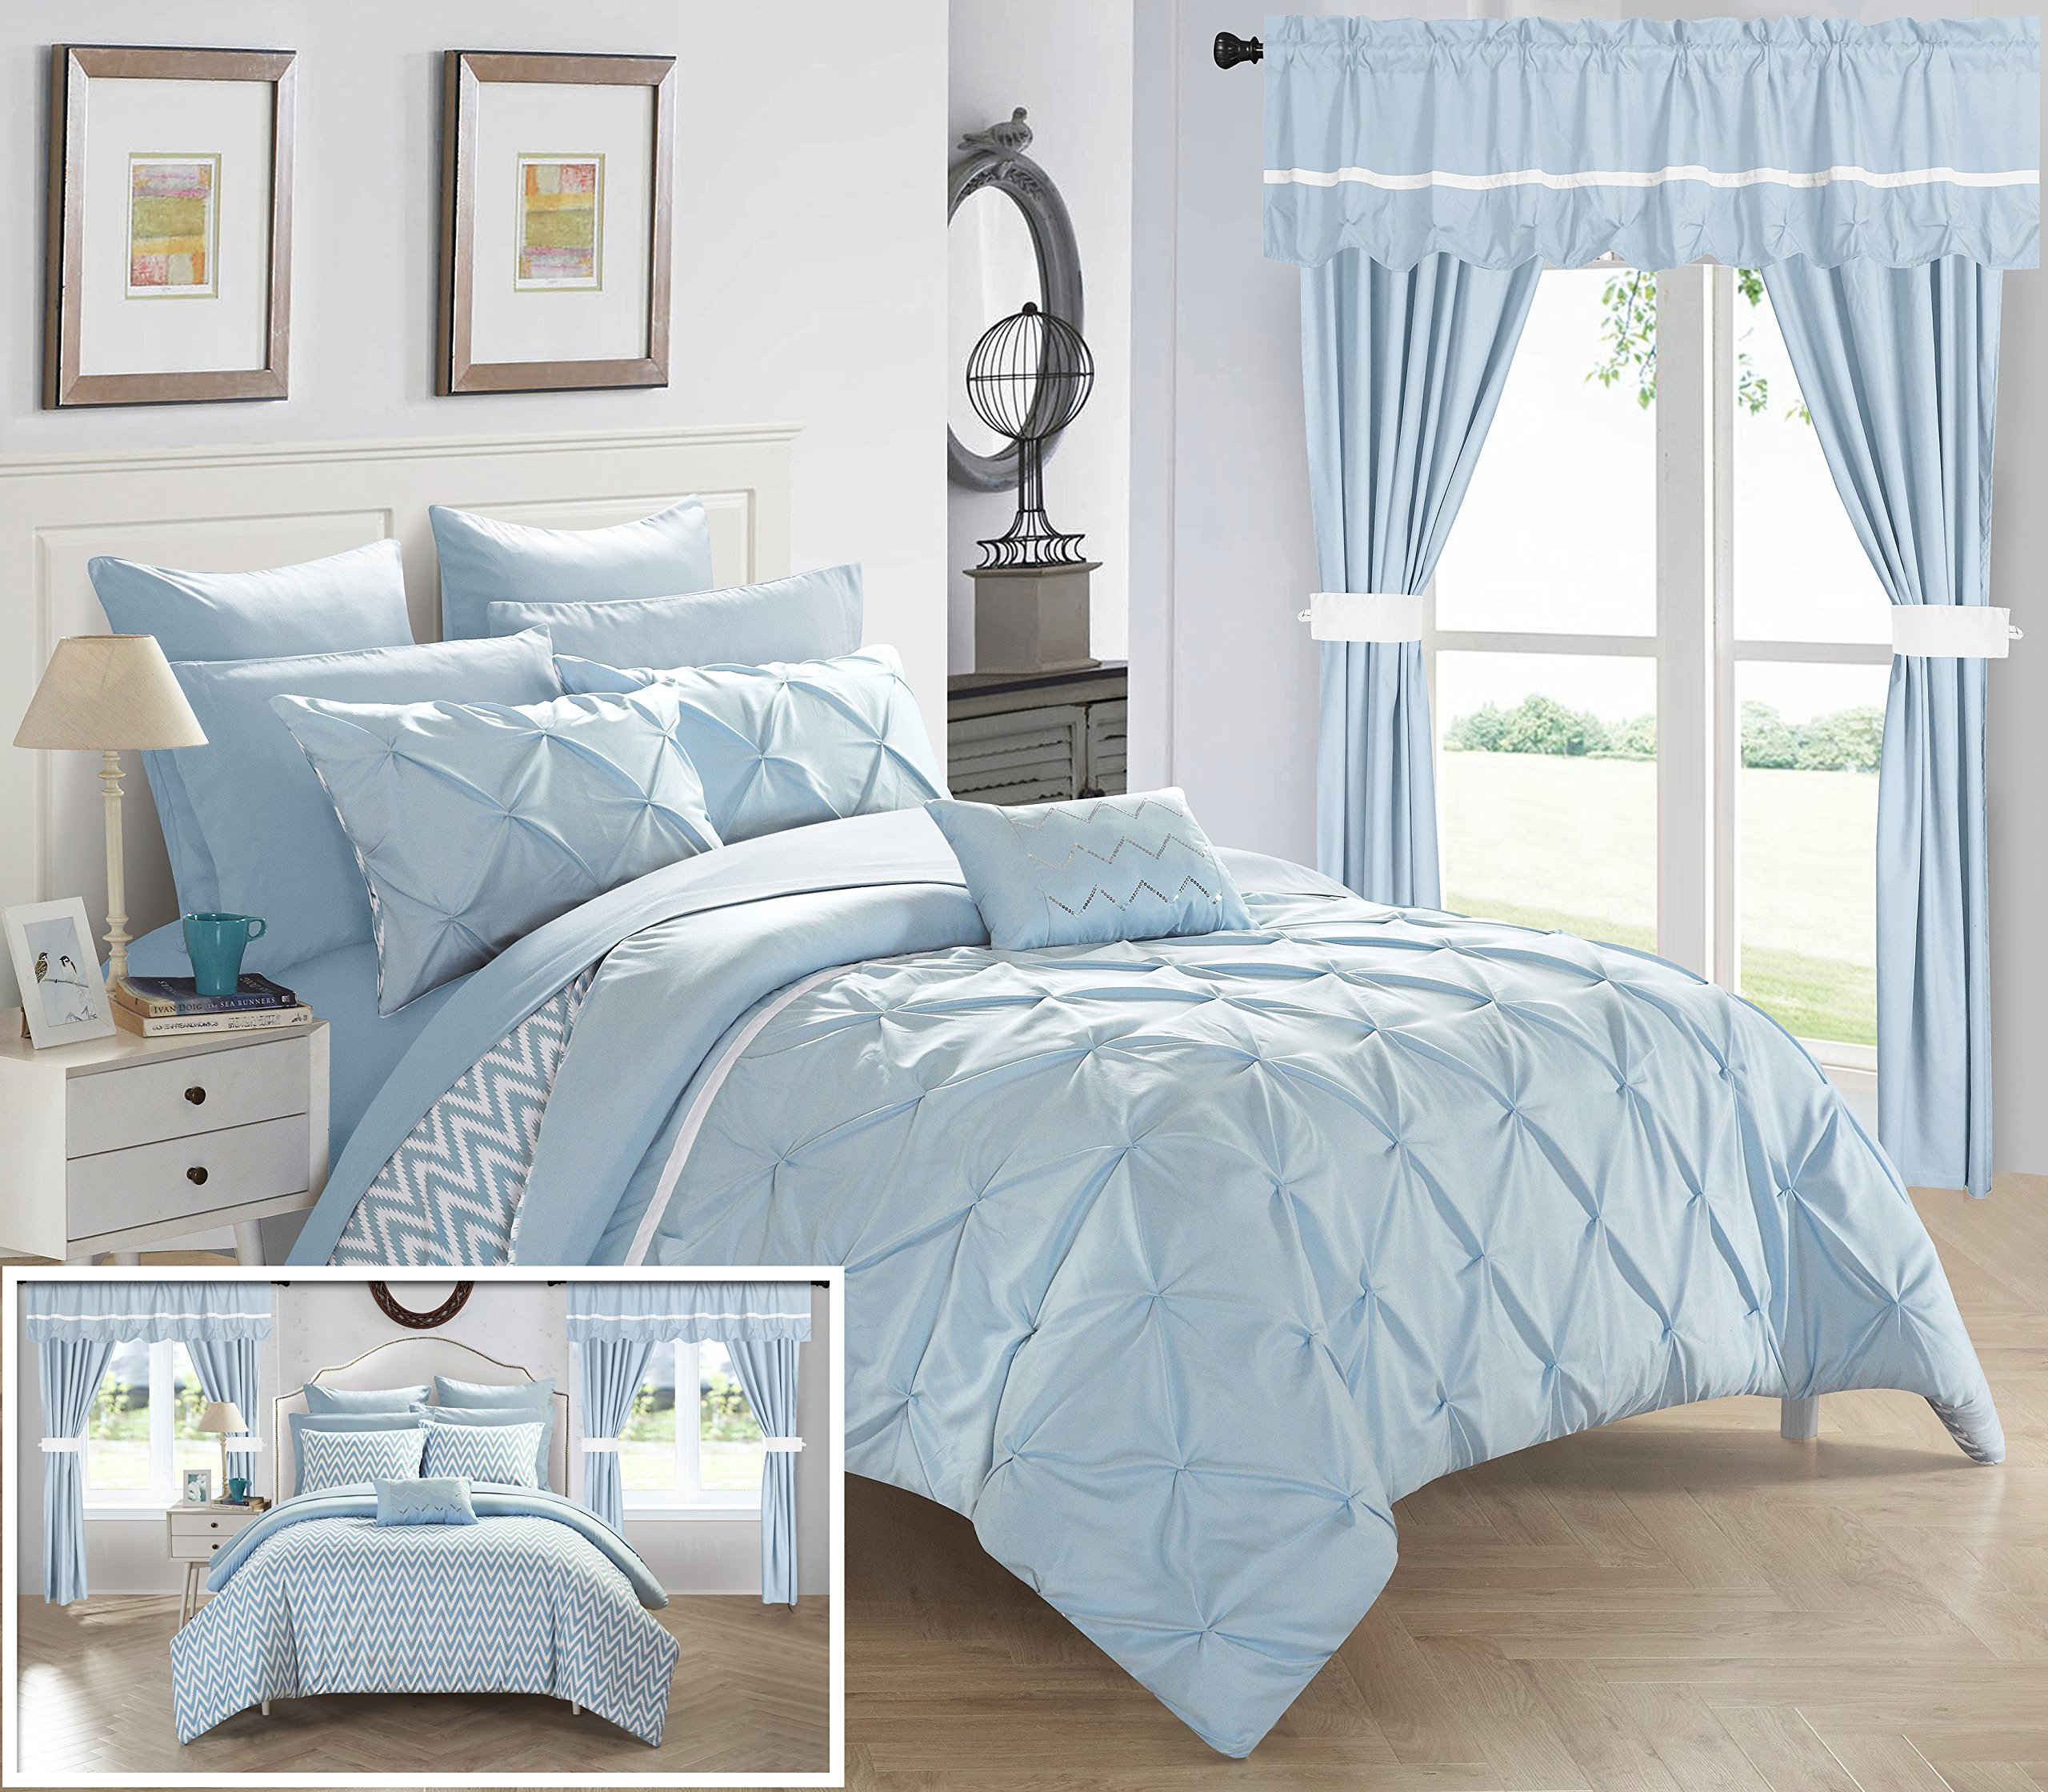 Chic Home CS0589-AN 20 Piece Jacksonville Complete Bed Room In A Bag Super Pinch Pleated Design Reversible Chevron Pattern Comforter Set, Sheet, Window Treatments And Decorative Pillows, Queen, Blue